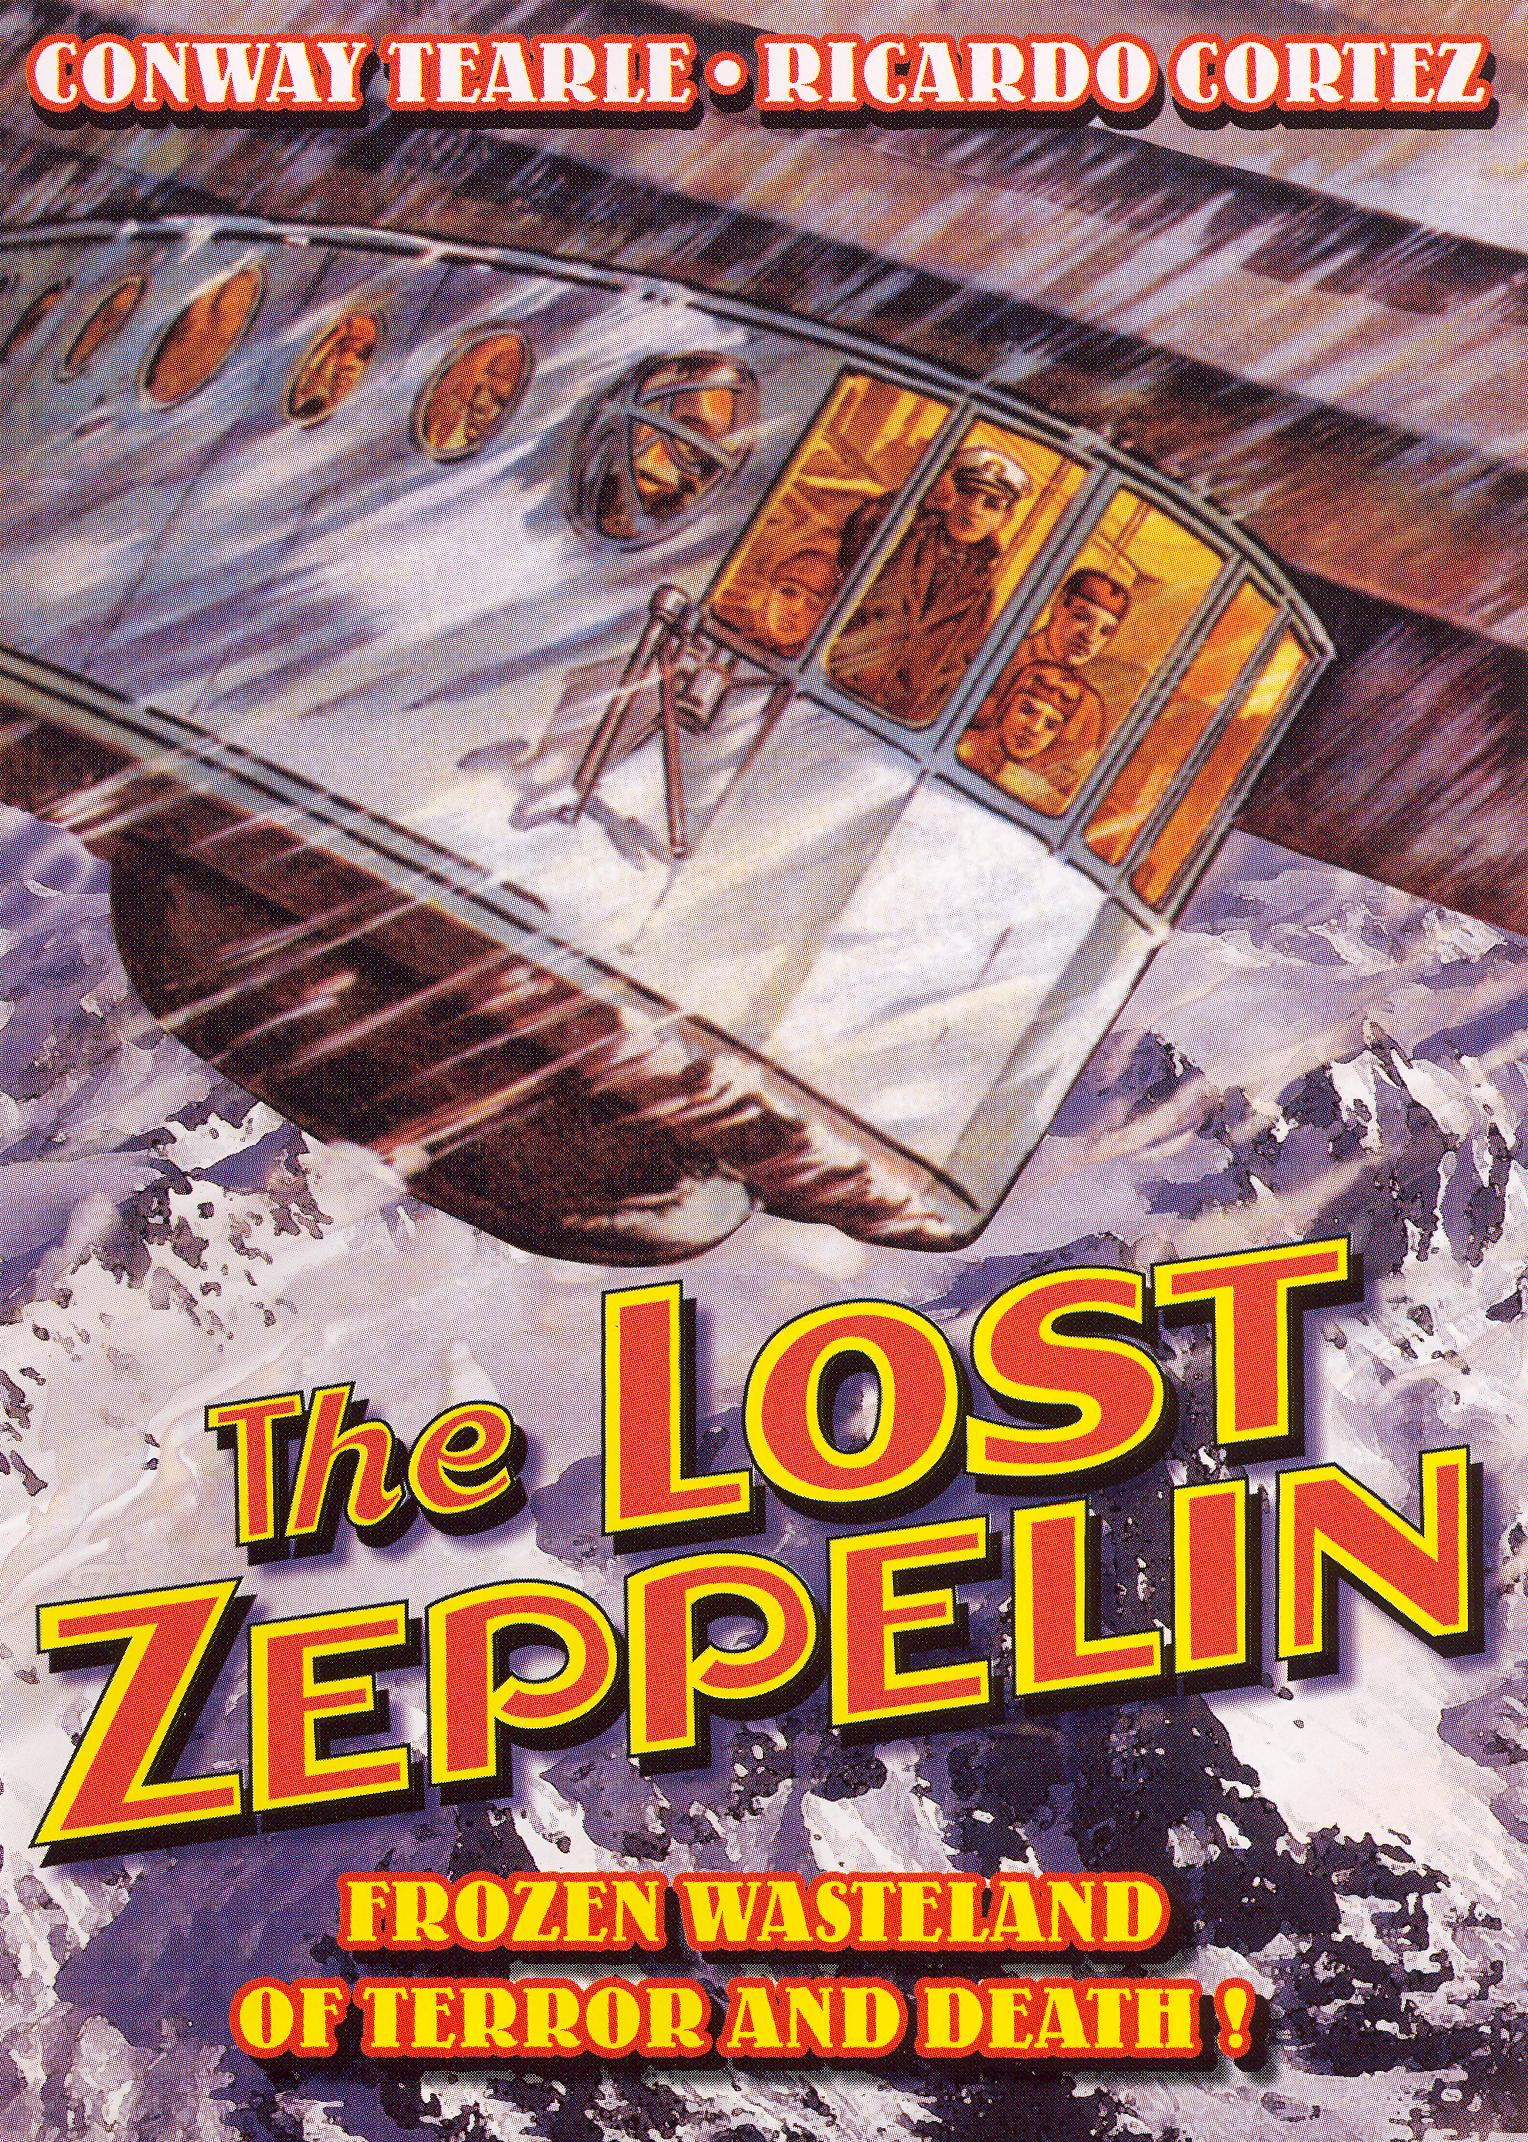 The Lost Zeppelin